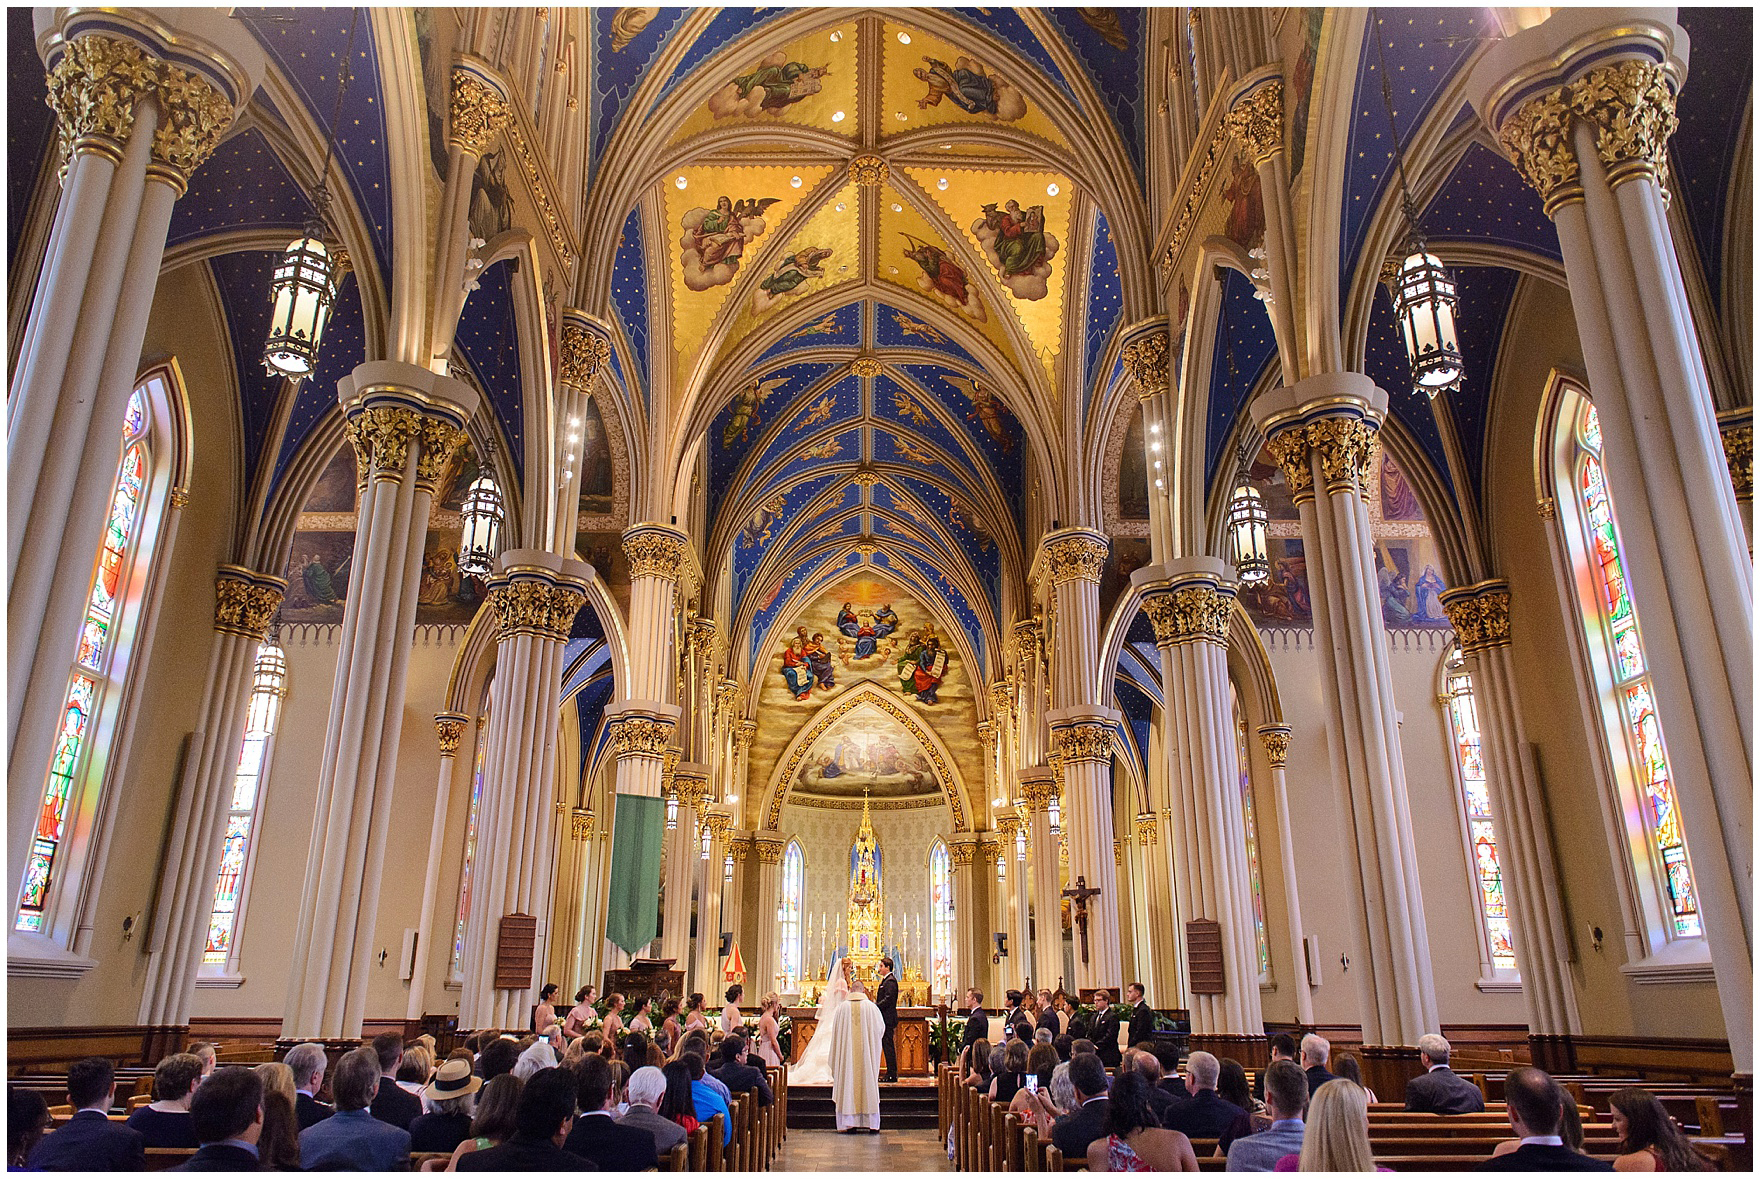 The bride and groom exchange vows at the Basilica of the Sacred Heart during a University of Notre Dame wedding.